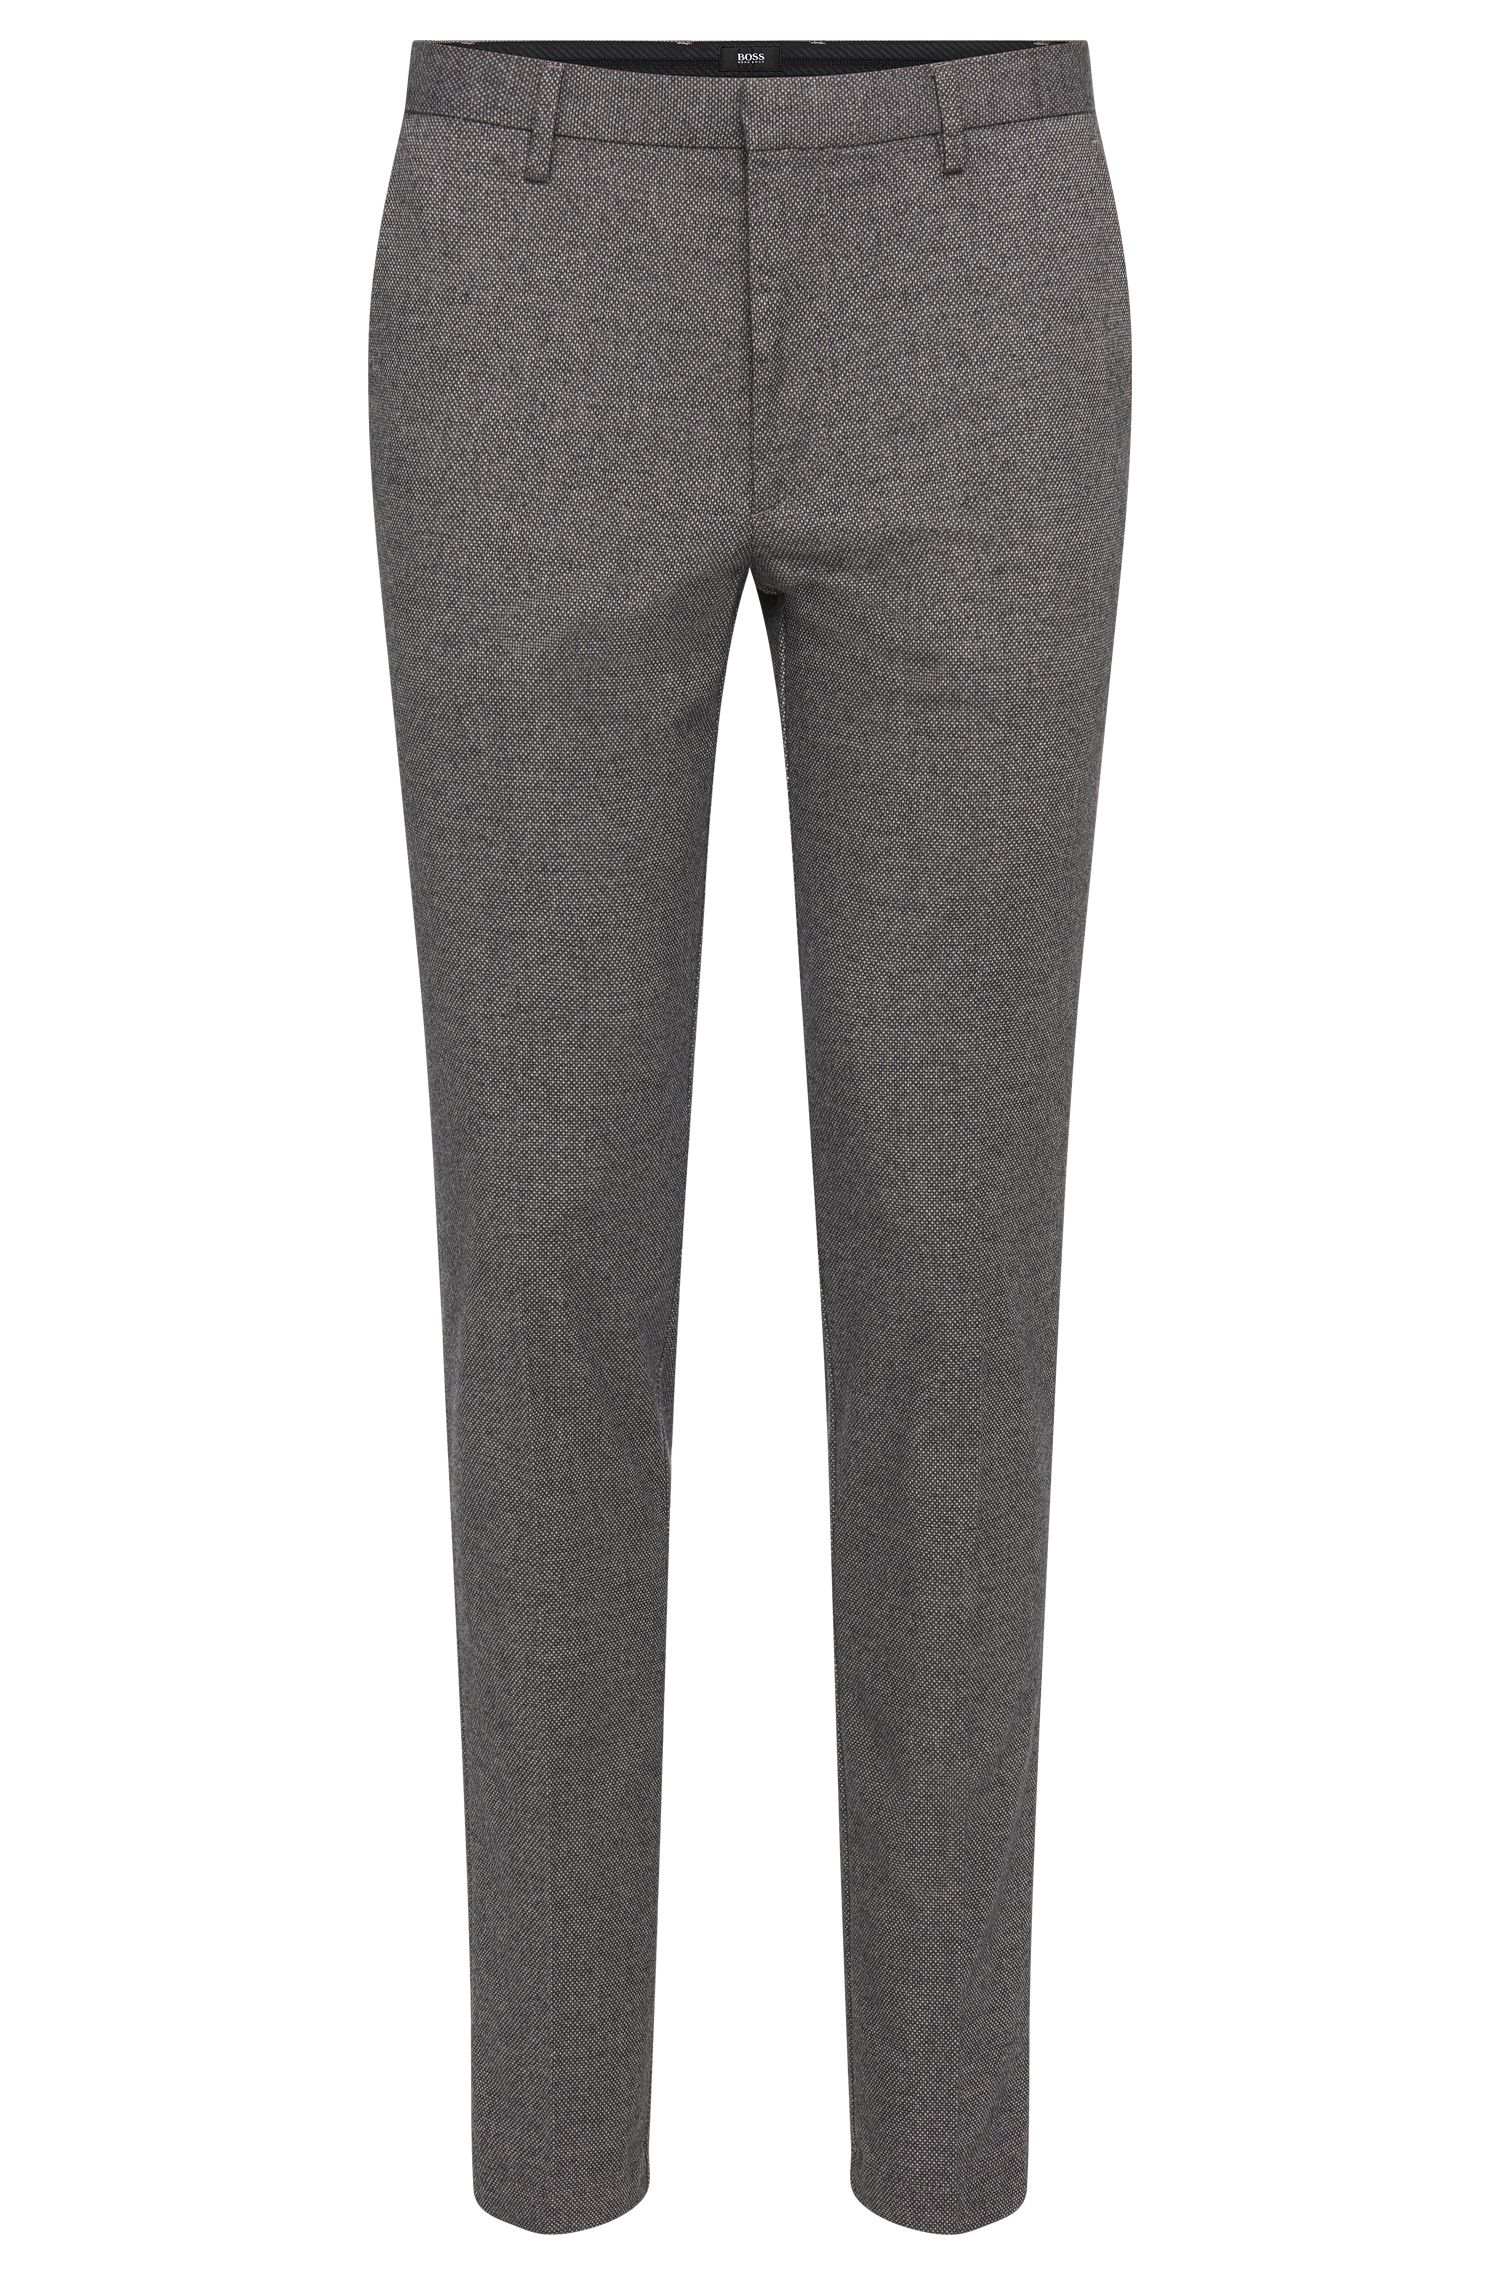 'Kaito-W'   Extra Slim Fit, Stretch Cotton Blend Patterned Pants